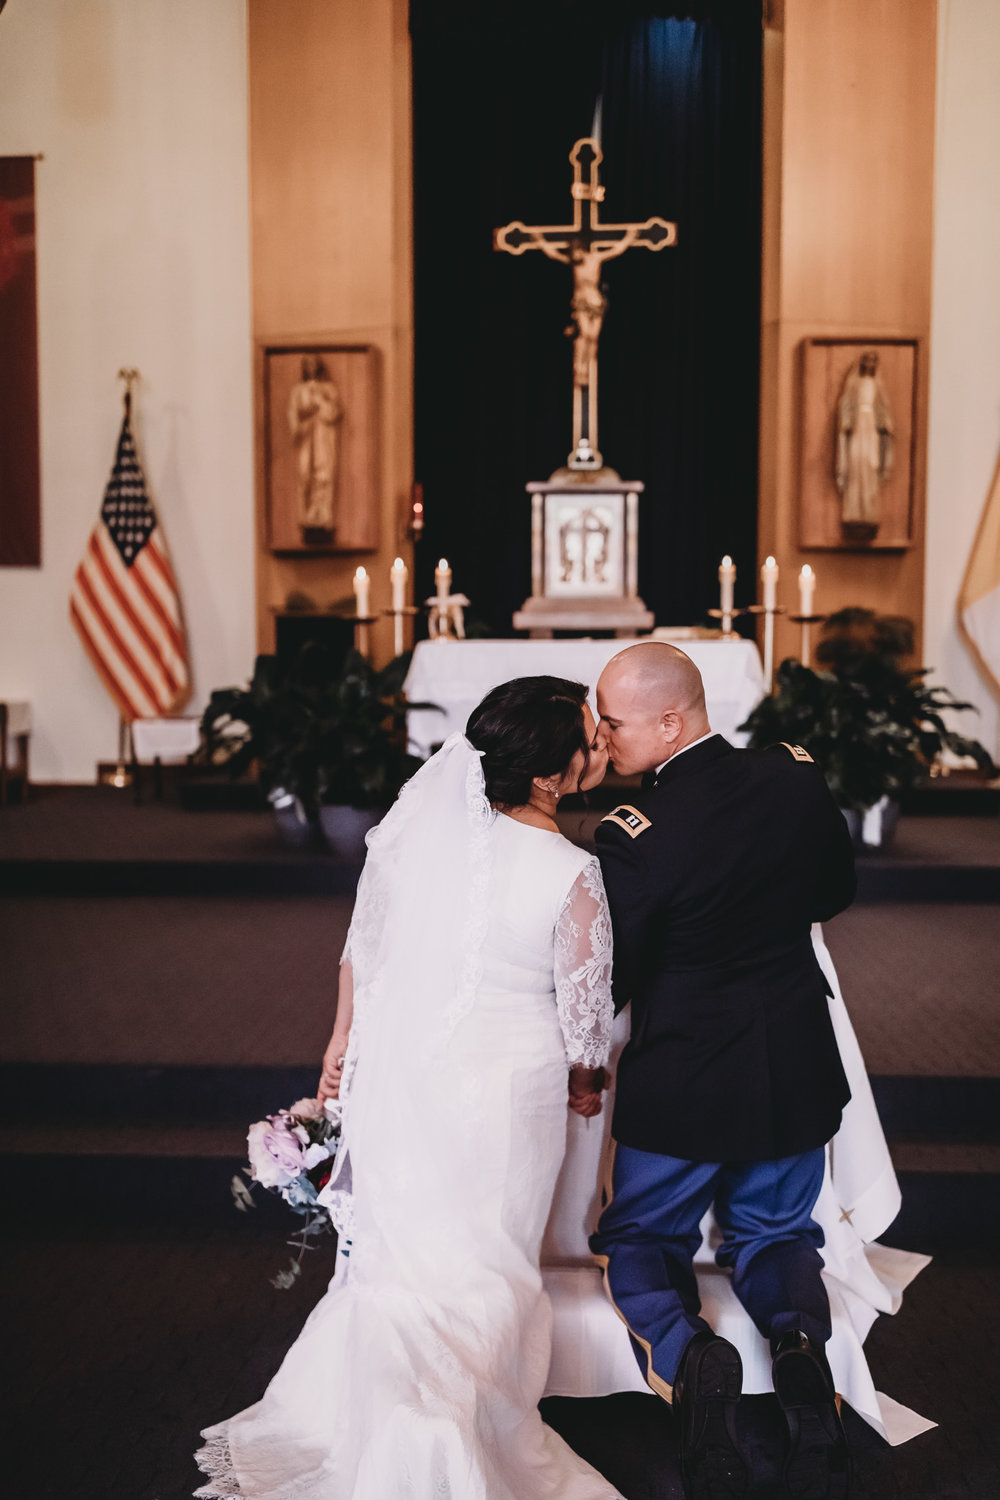 Service Member and Bride Kissing at Alter